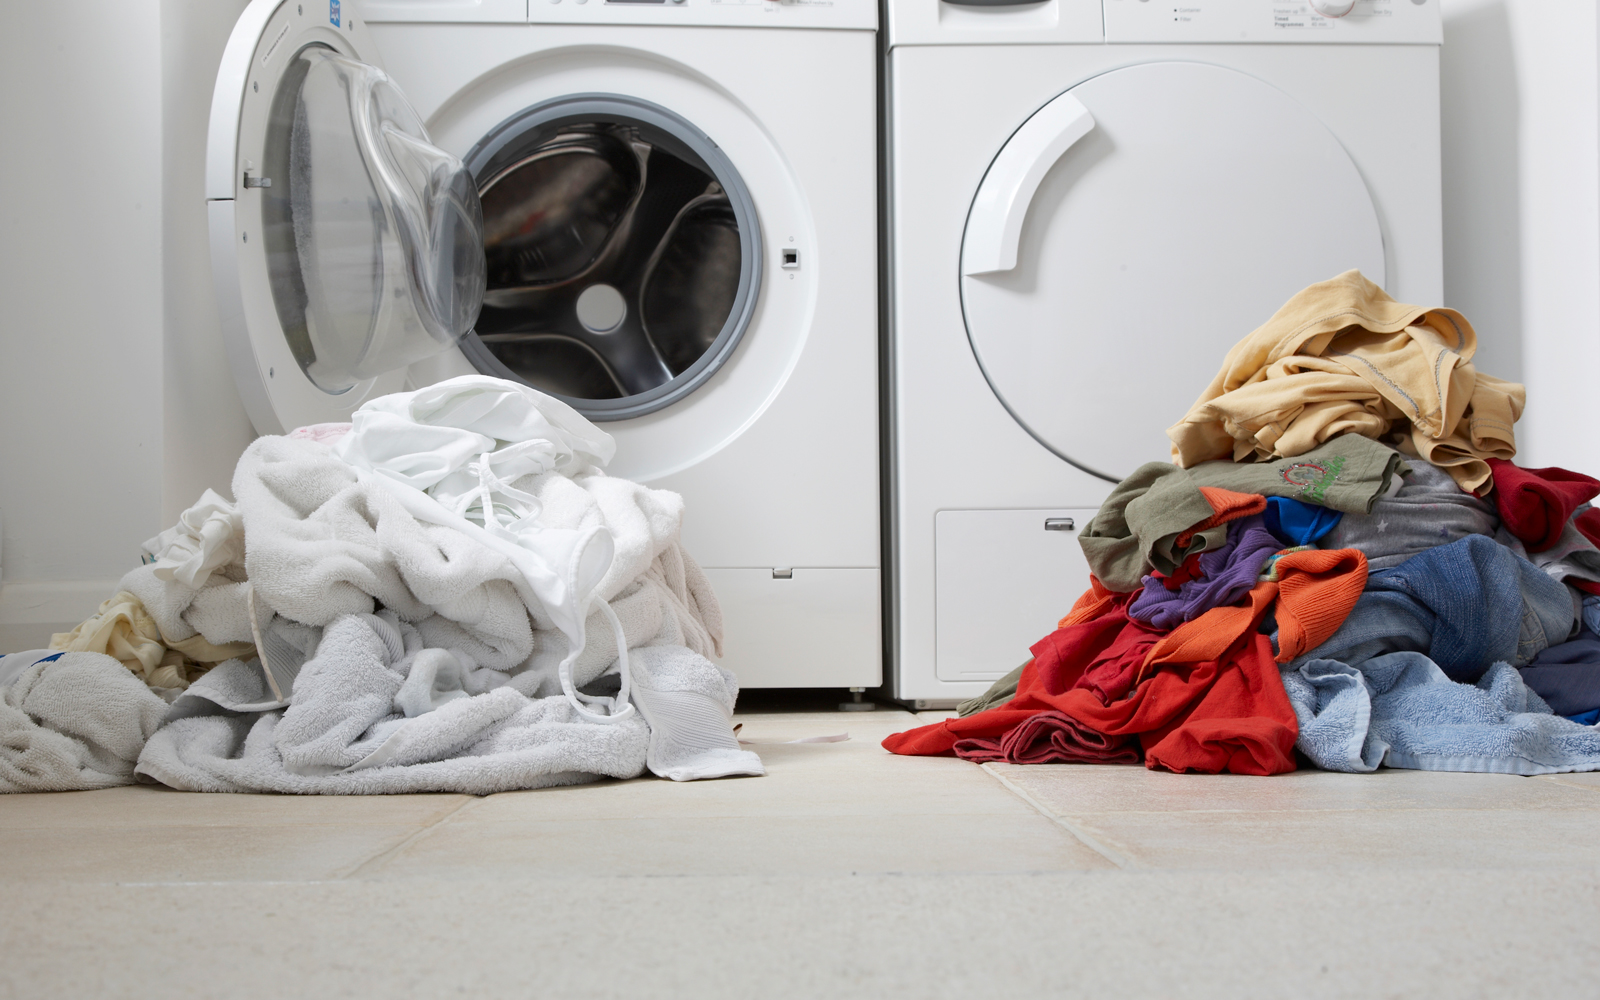 5 Simple Solutions for Your Laundry Troubles